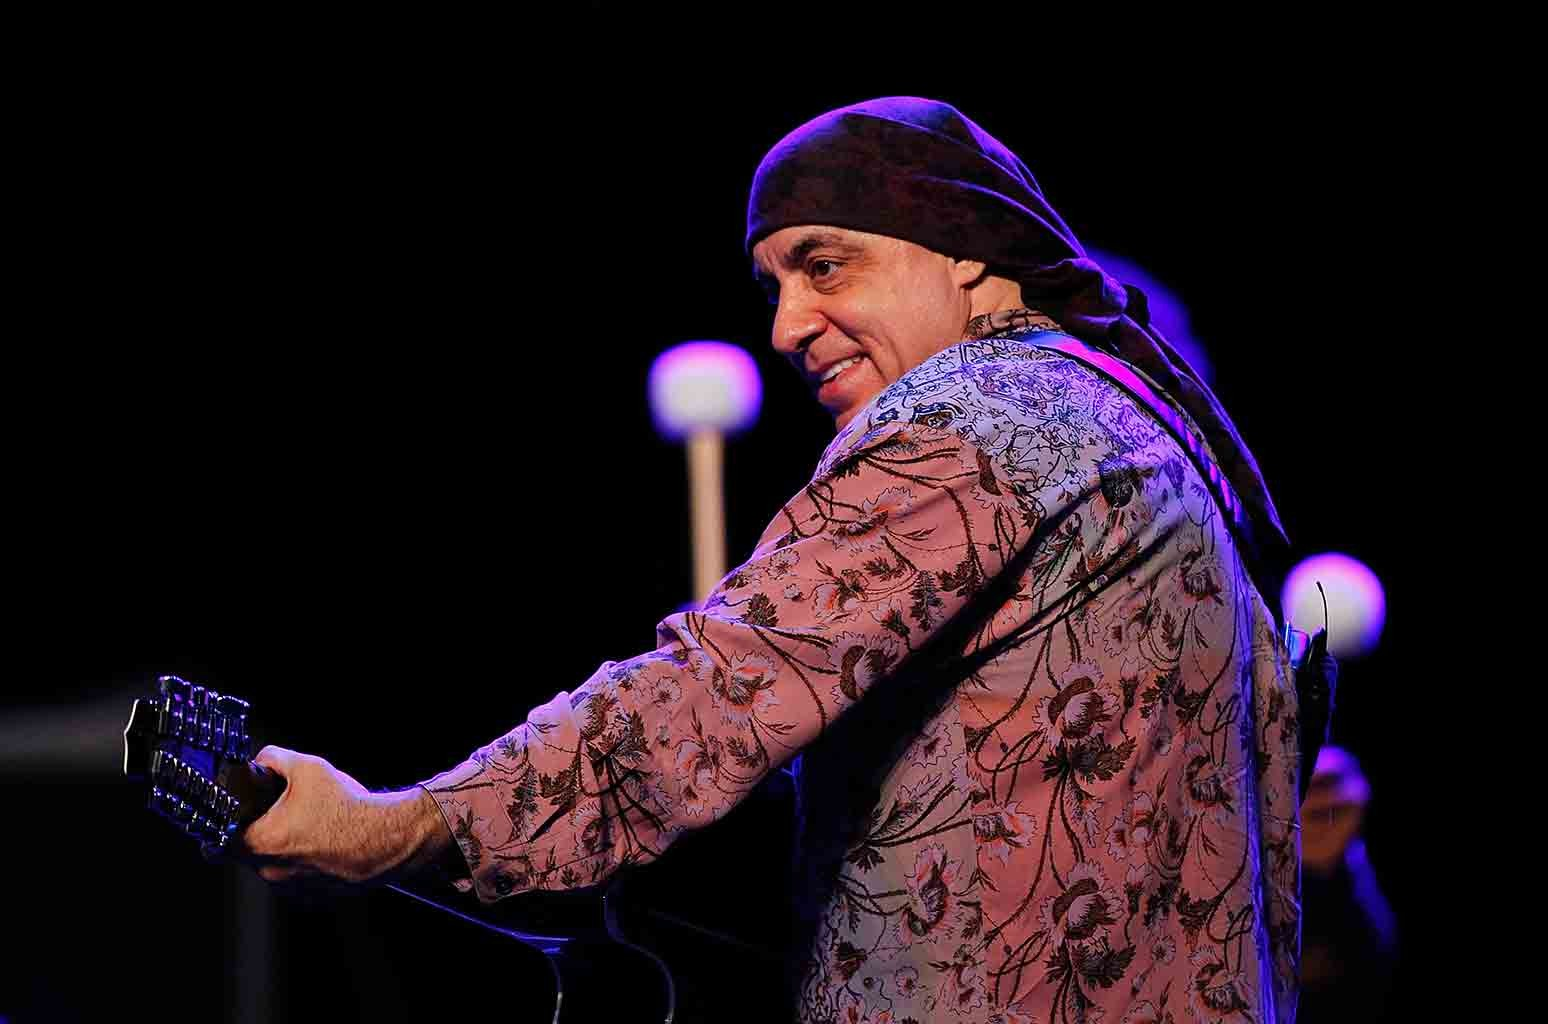 Stevie Van Zandt of the E Street Band performs at a sound check before a press conference at Perth Arena on Feb. 5, 2014 in Perth, Australia.